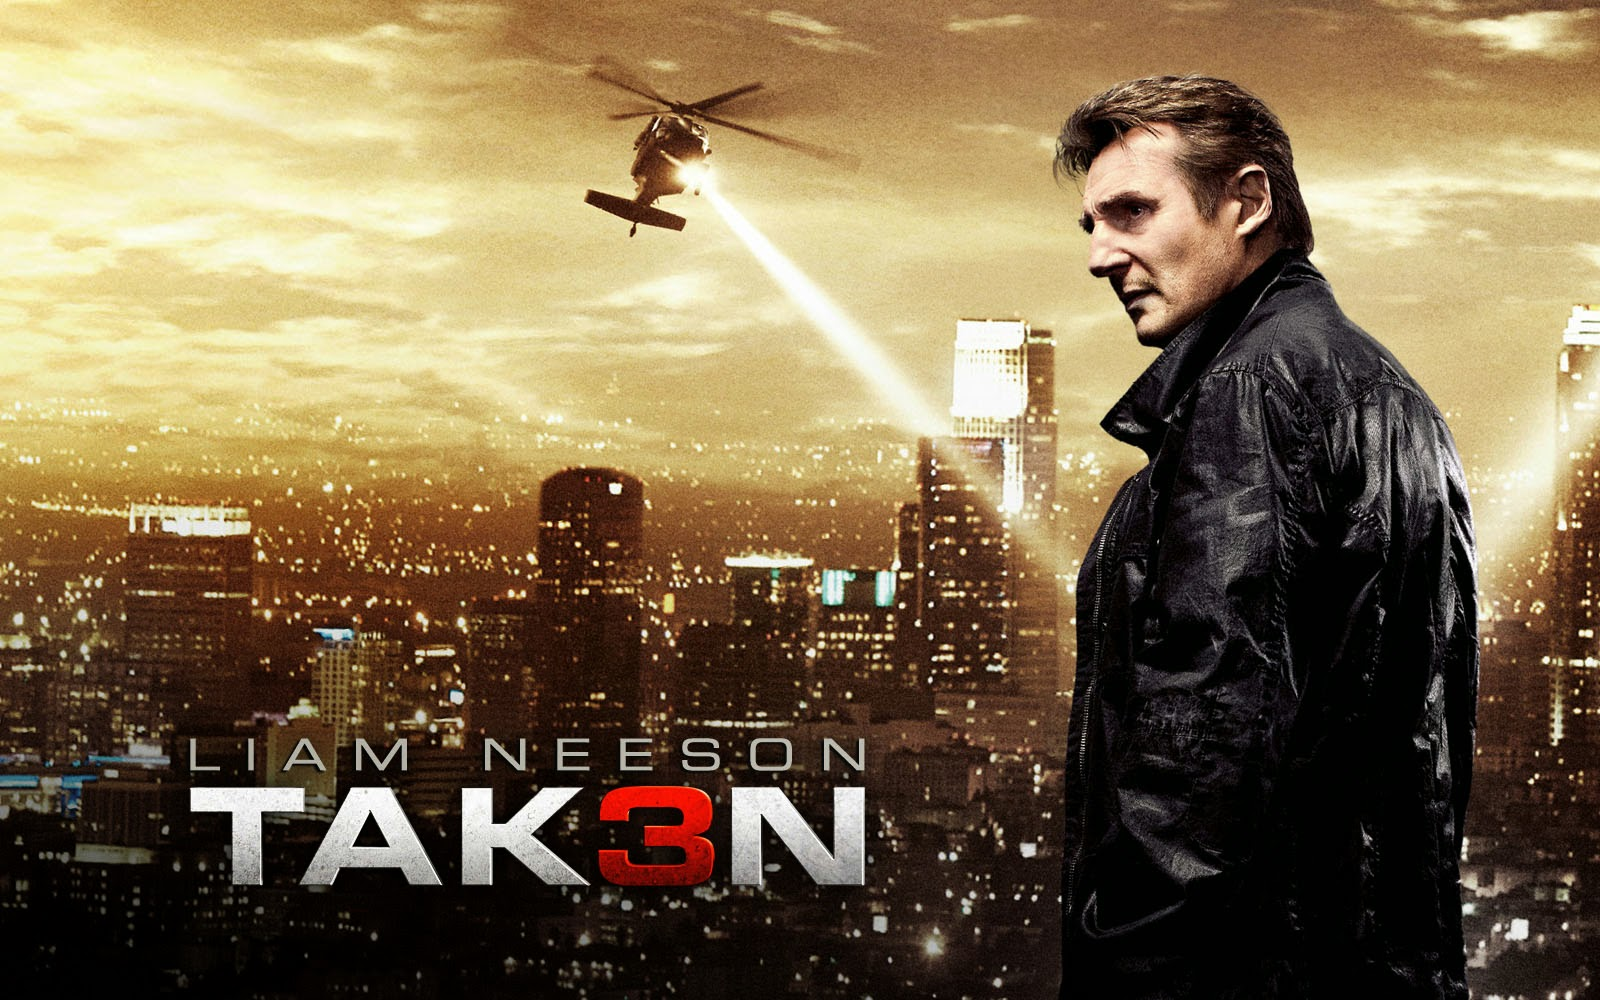 Official 'Taken 3' Poster.